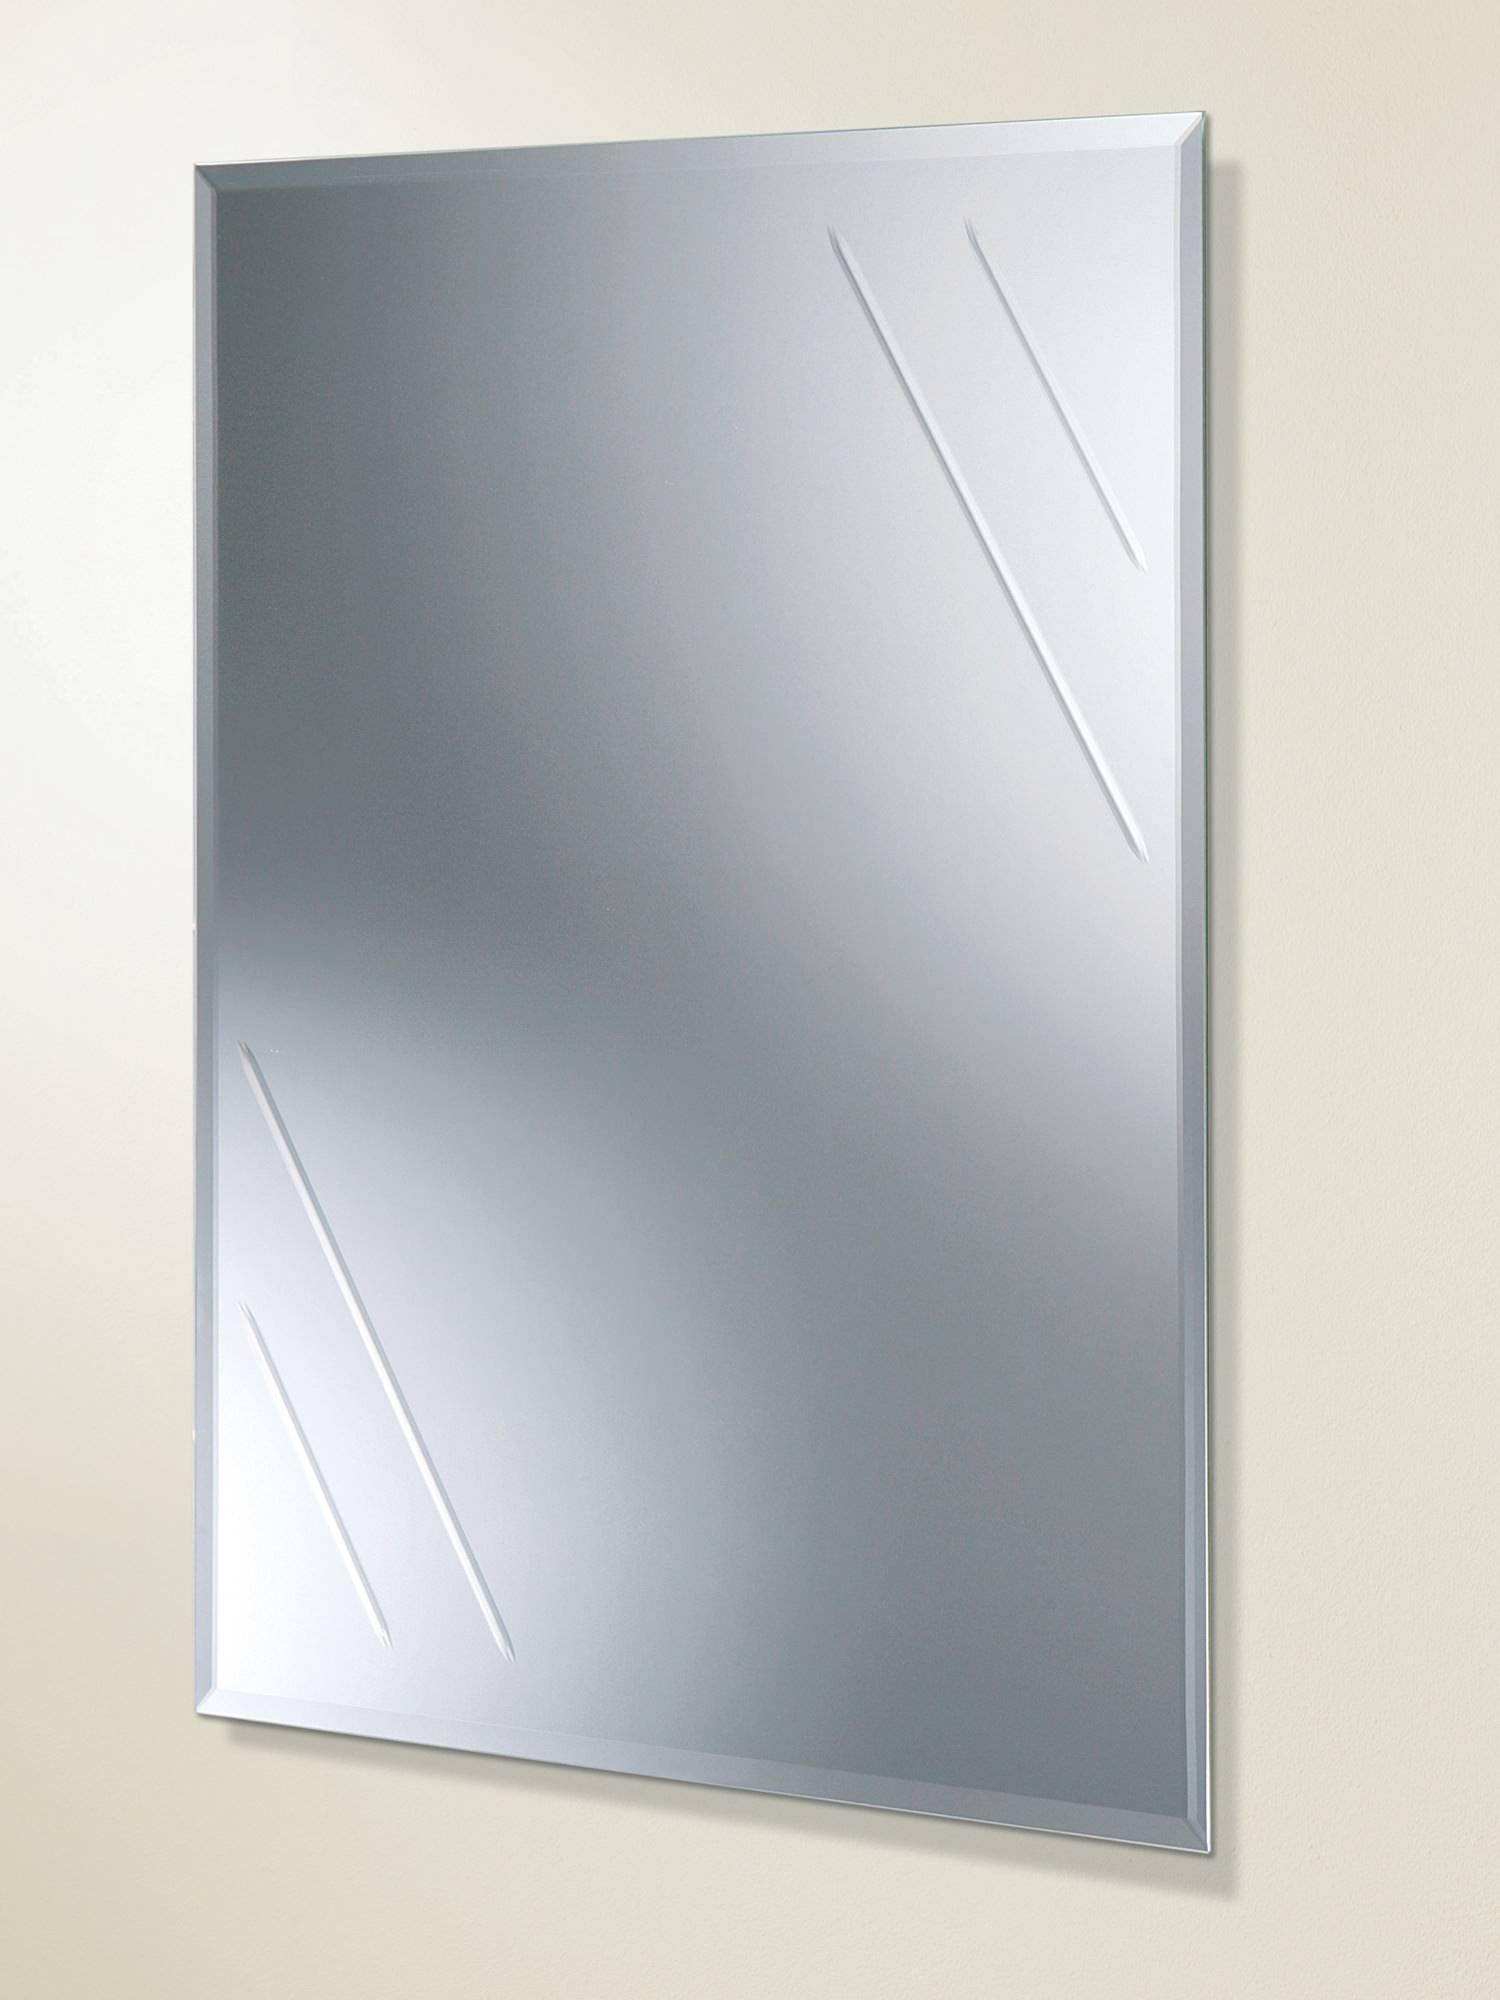 Hib Albina Rectangular Bevelled Edge Bathroom Mirror | 61164100 Intended For Bevelled Edge Mirrors (View 6 of 15)